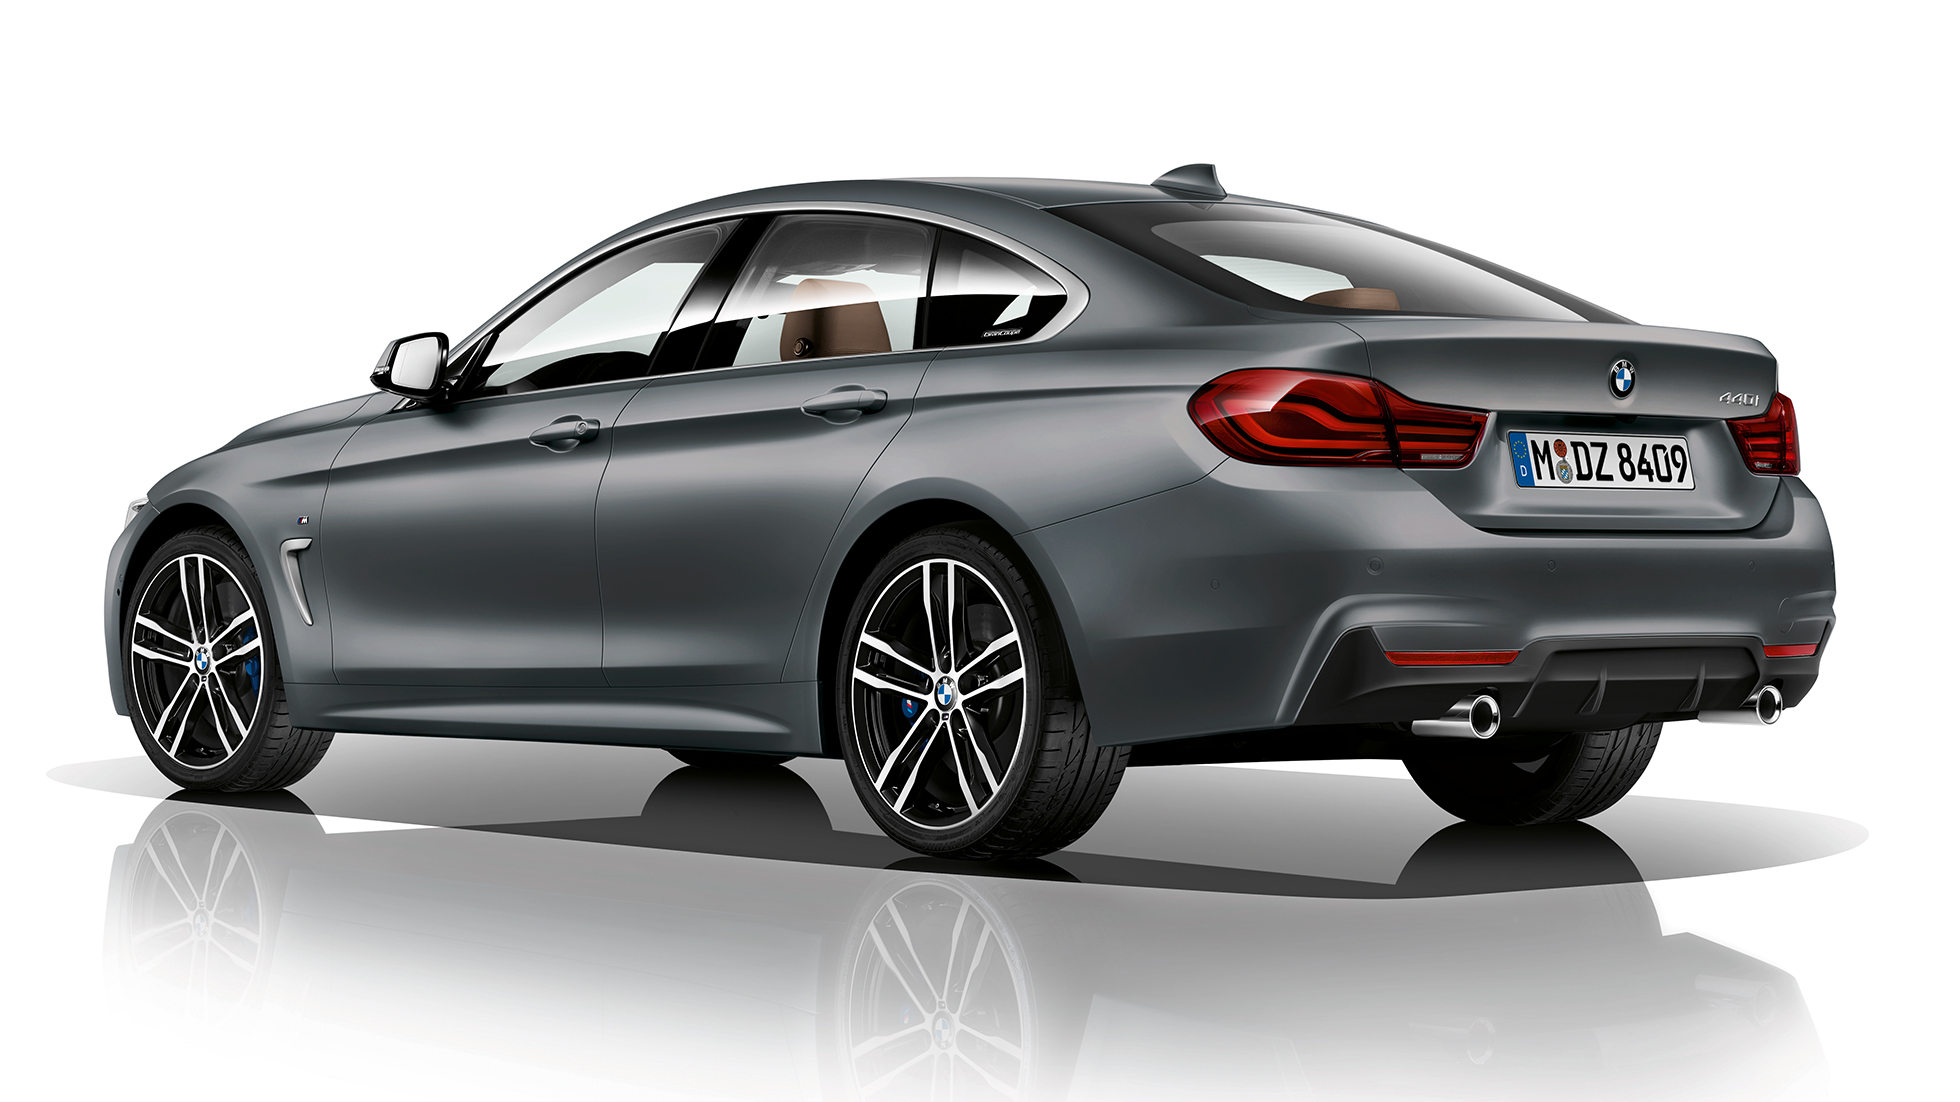 bmw 4 series gran coup details equipment and technical. Black Bedroom Furniture Sets. Home Design Ideas